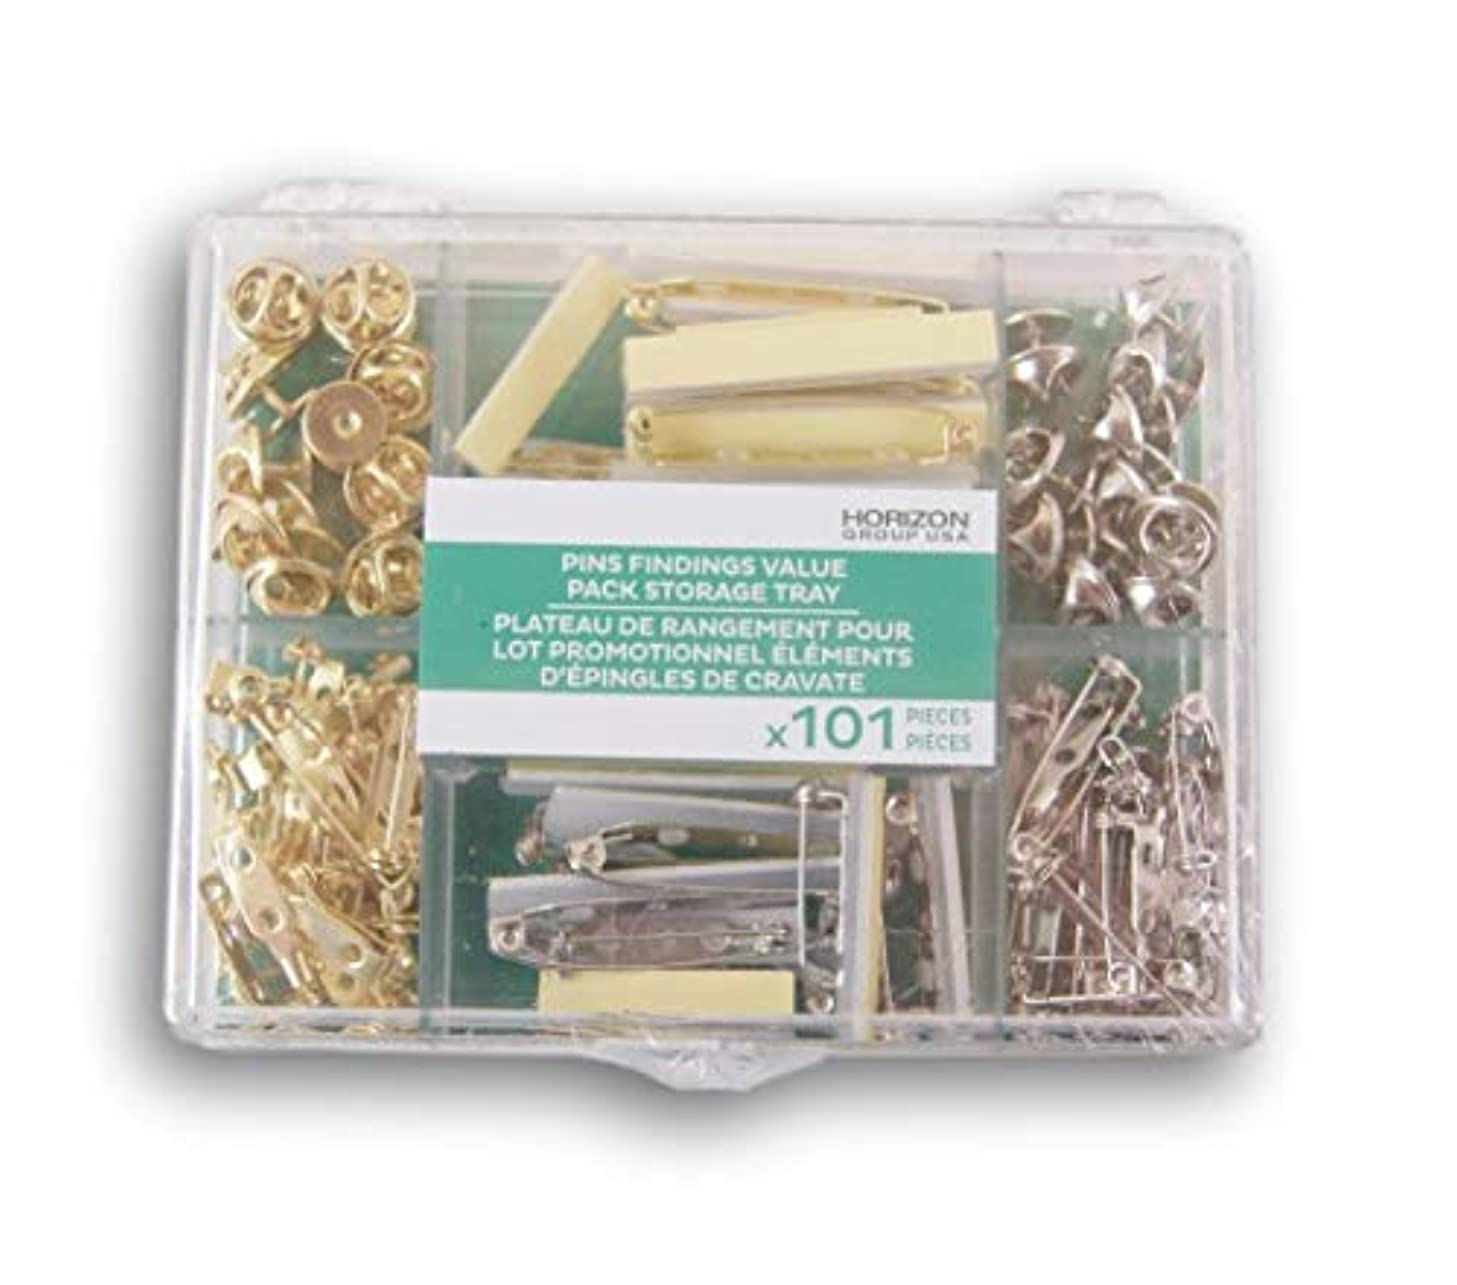 Pin Findings Pin Making Assortment Pack with Storage Tray - 101 Pieces